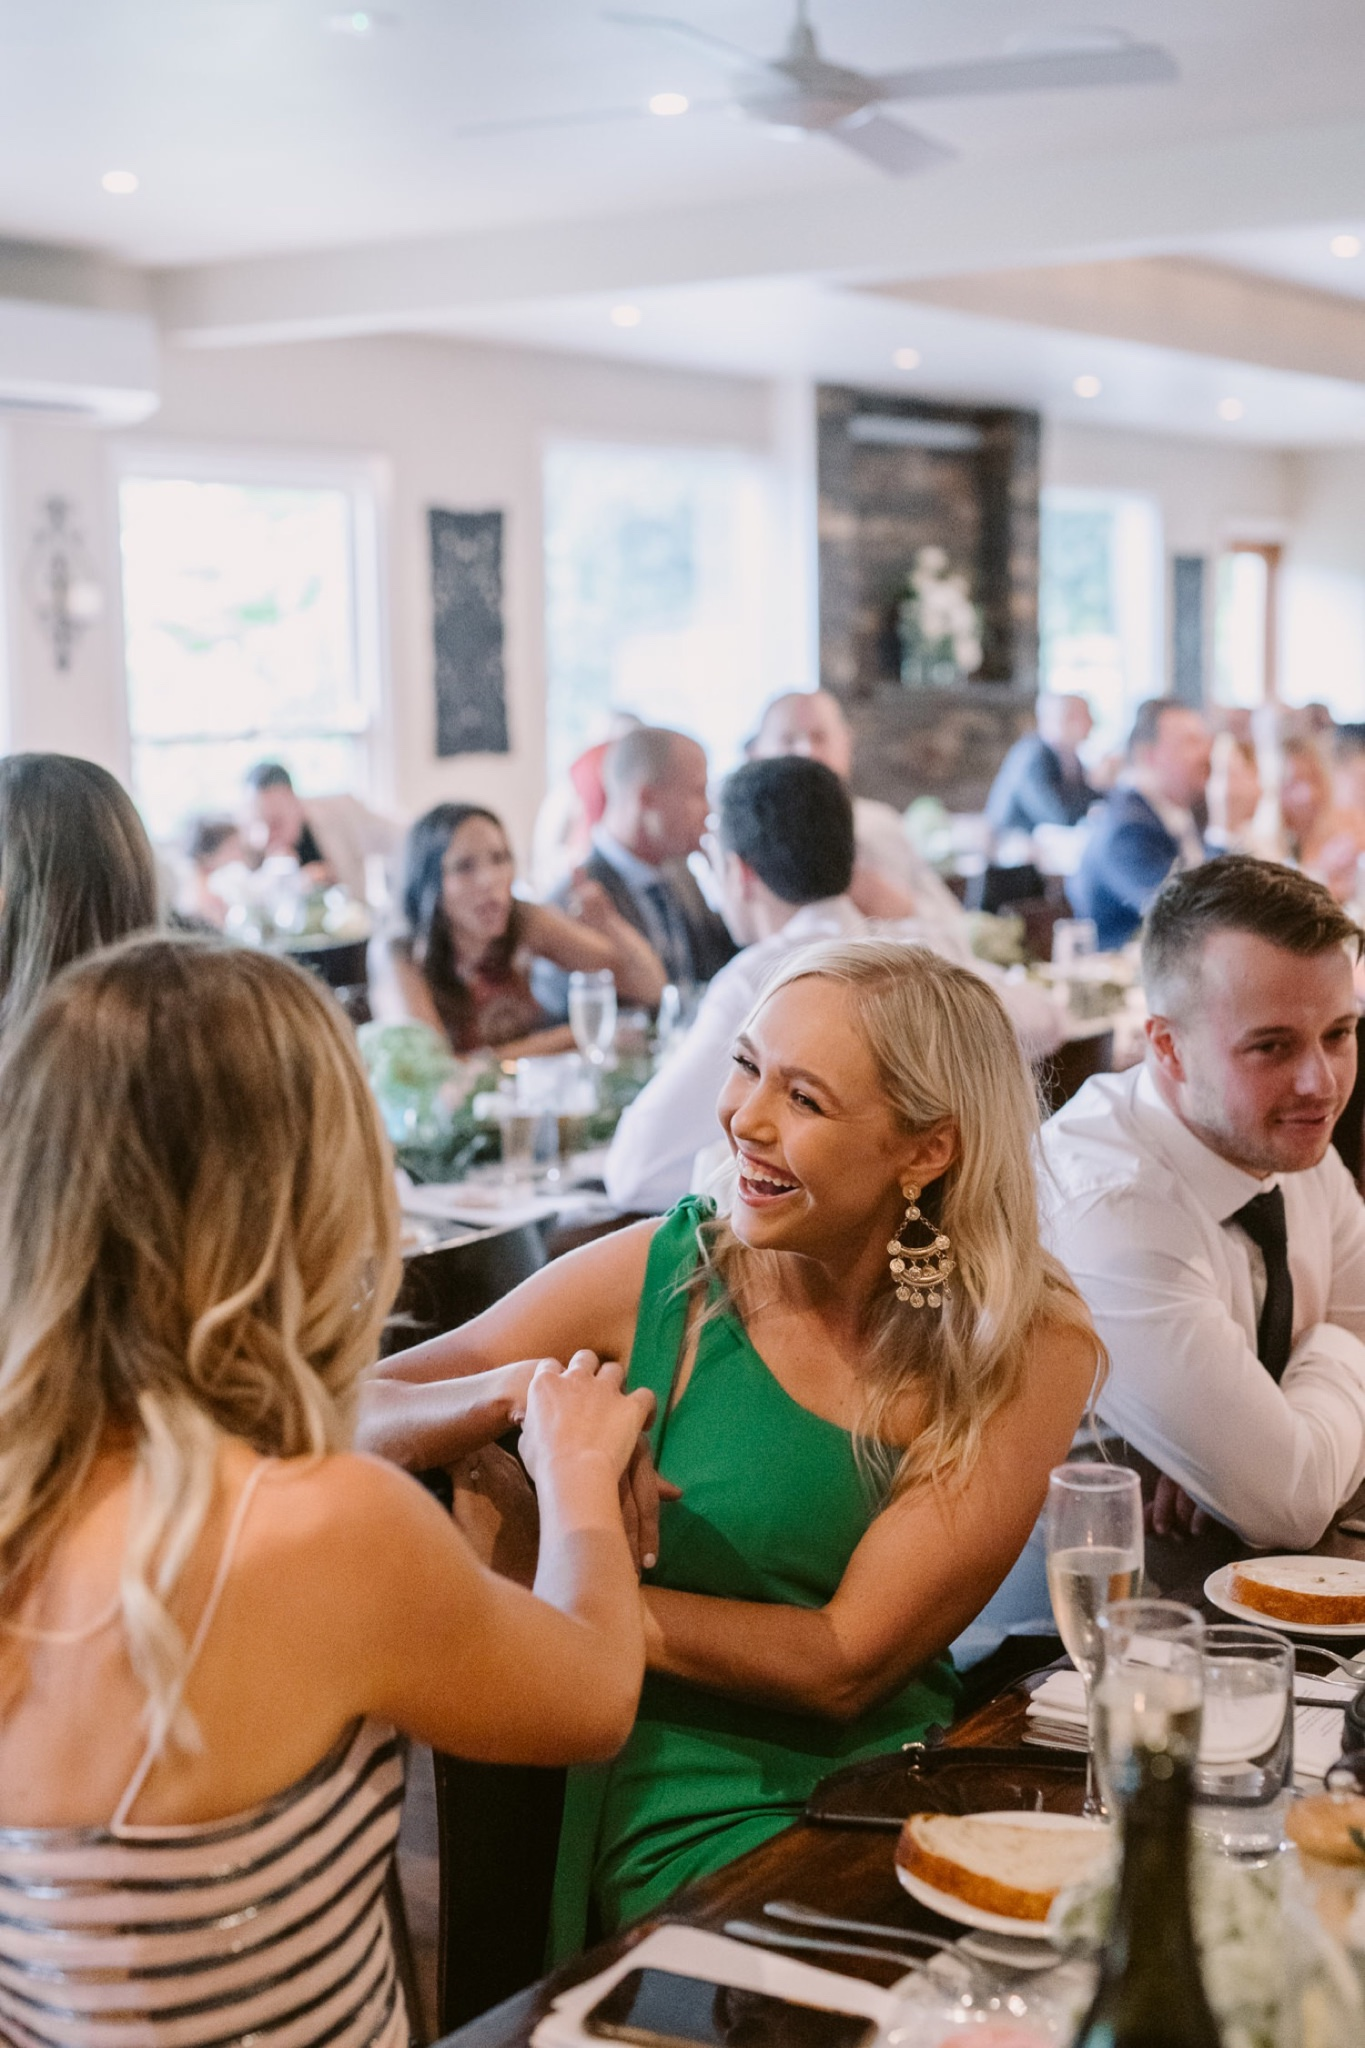 Immerse Yarra Valley Winery Wedding Photography99.jpg